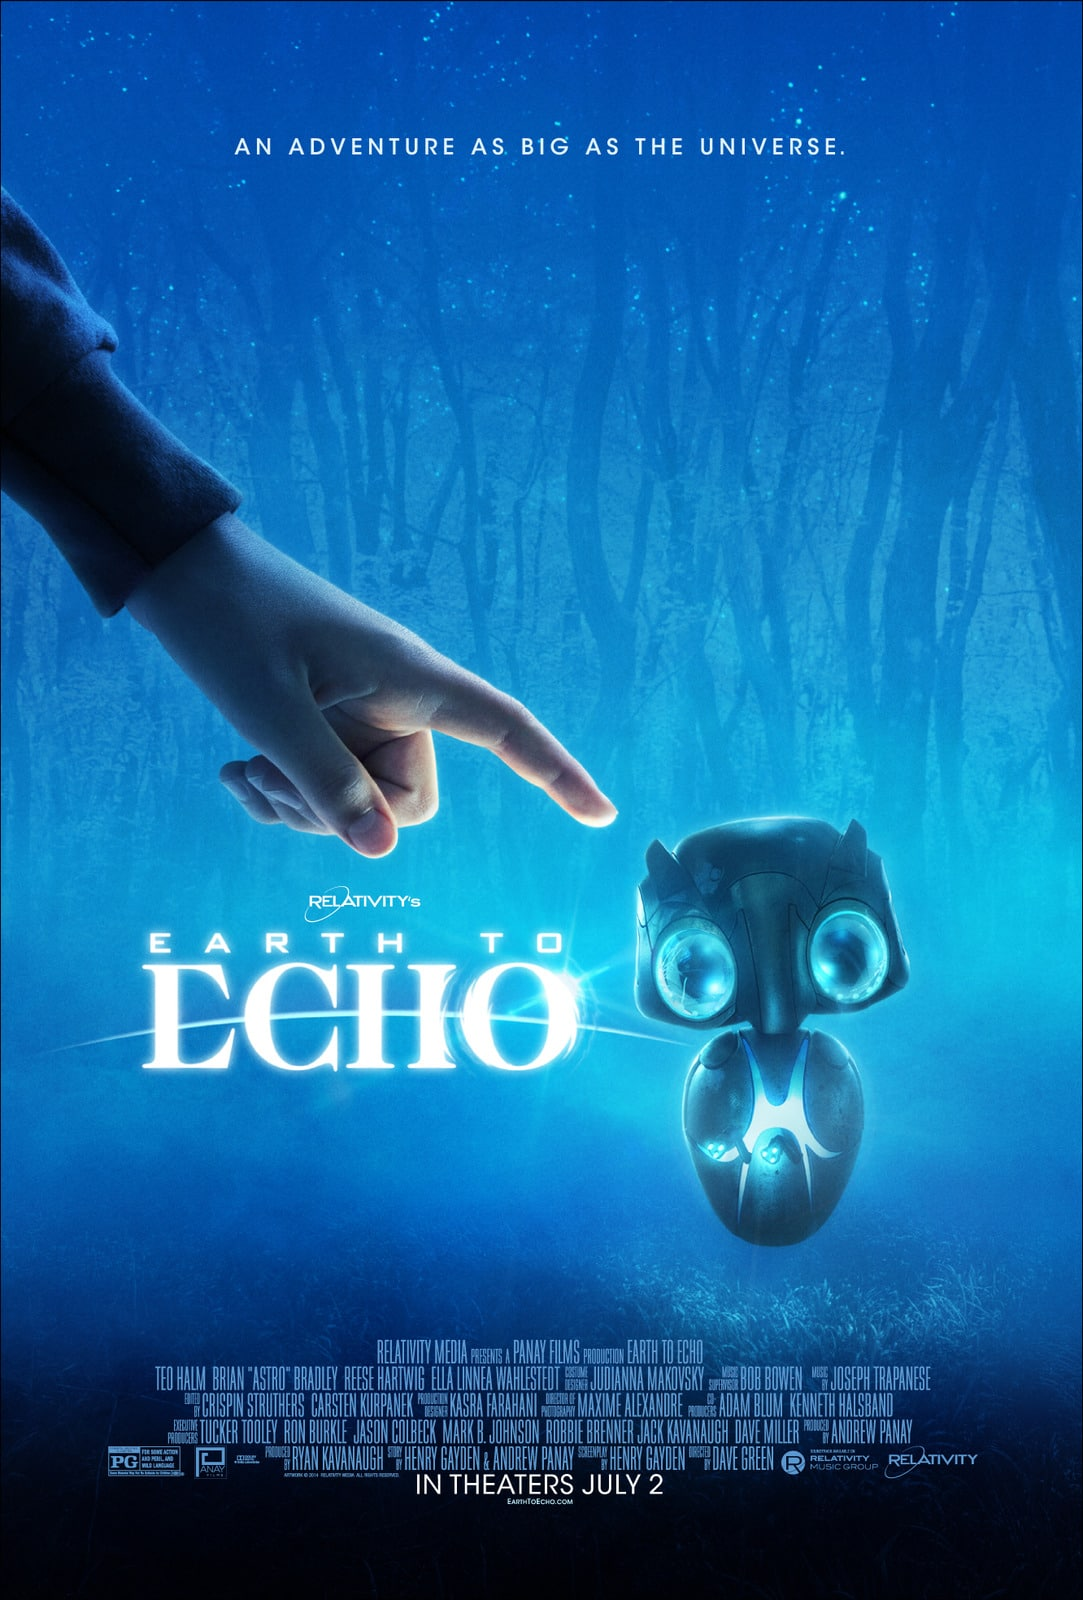 Earth to Echo is this generations Goonies